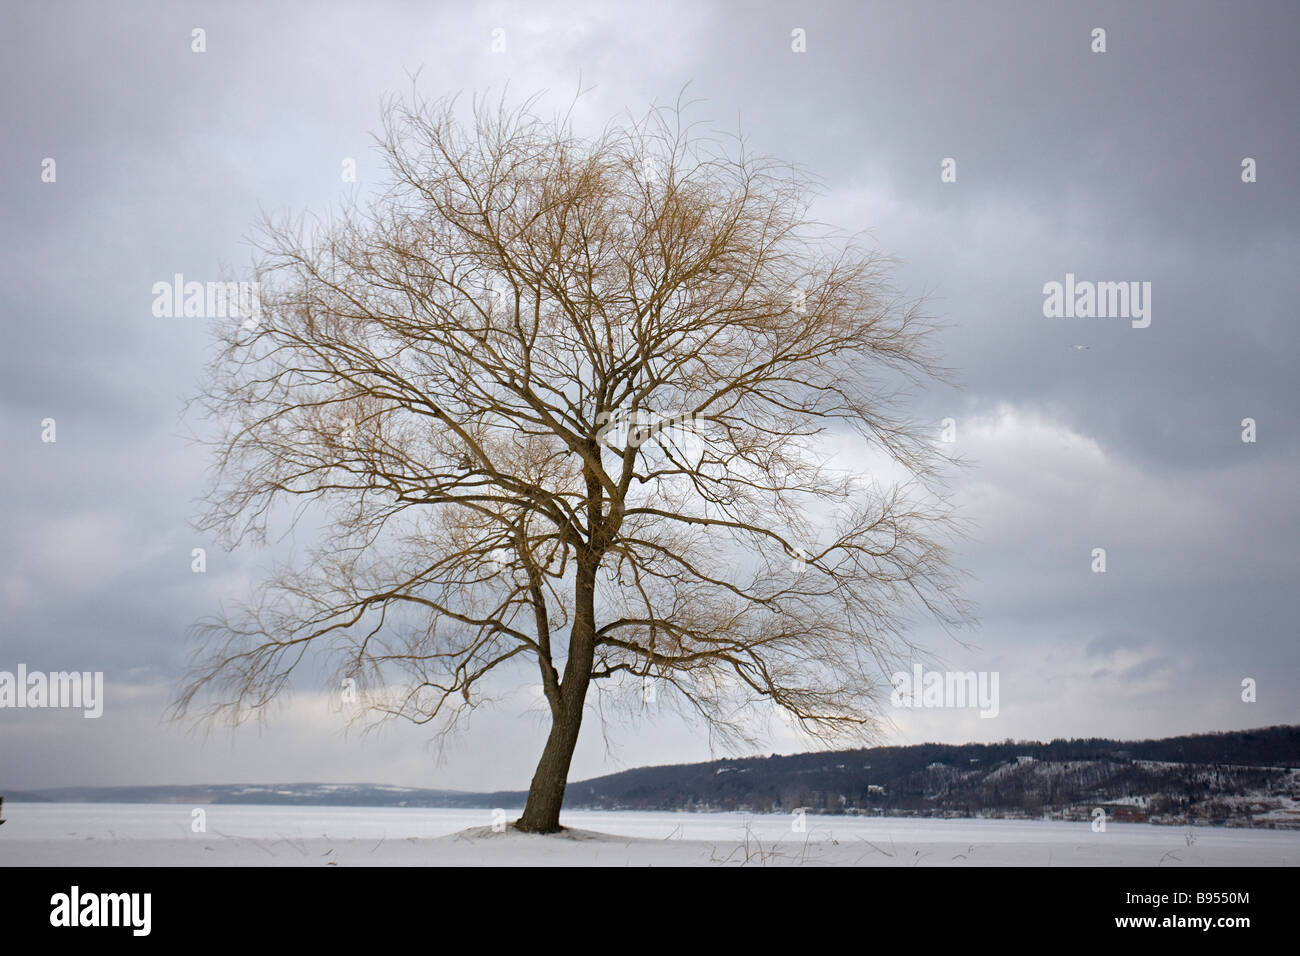 Leafless Tree on Lake - Lake frozen and snow covered - New York - USA - Stock Image